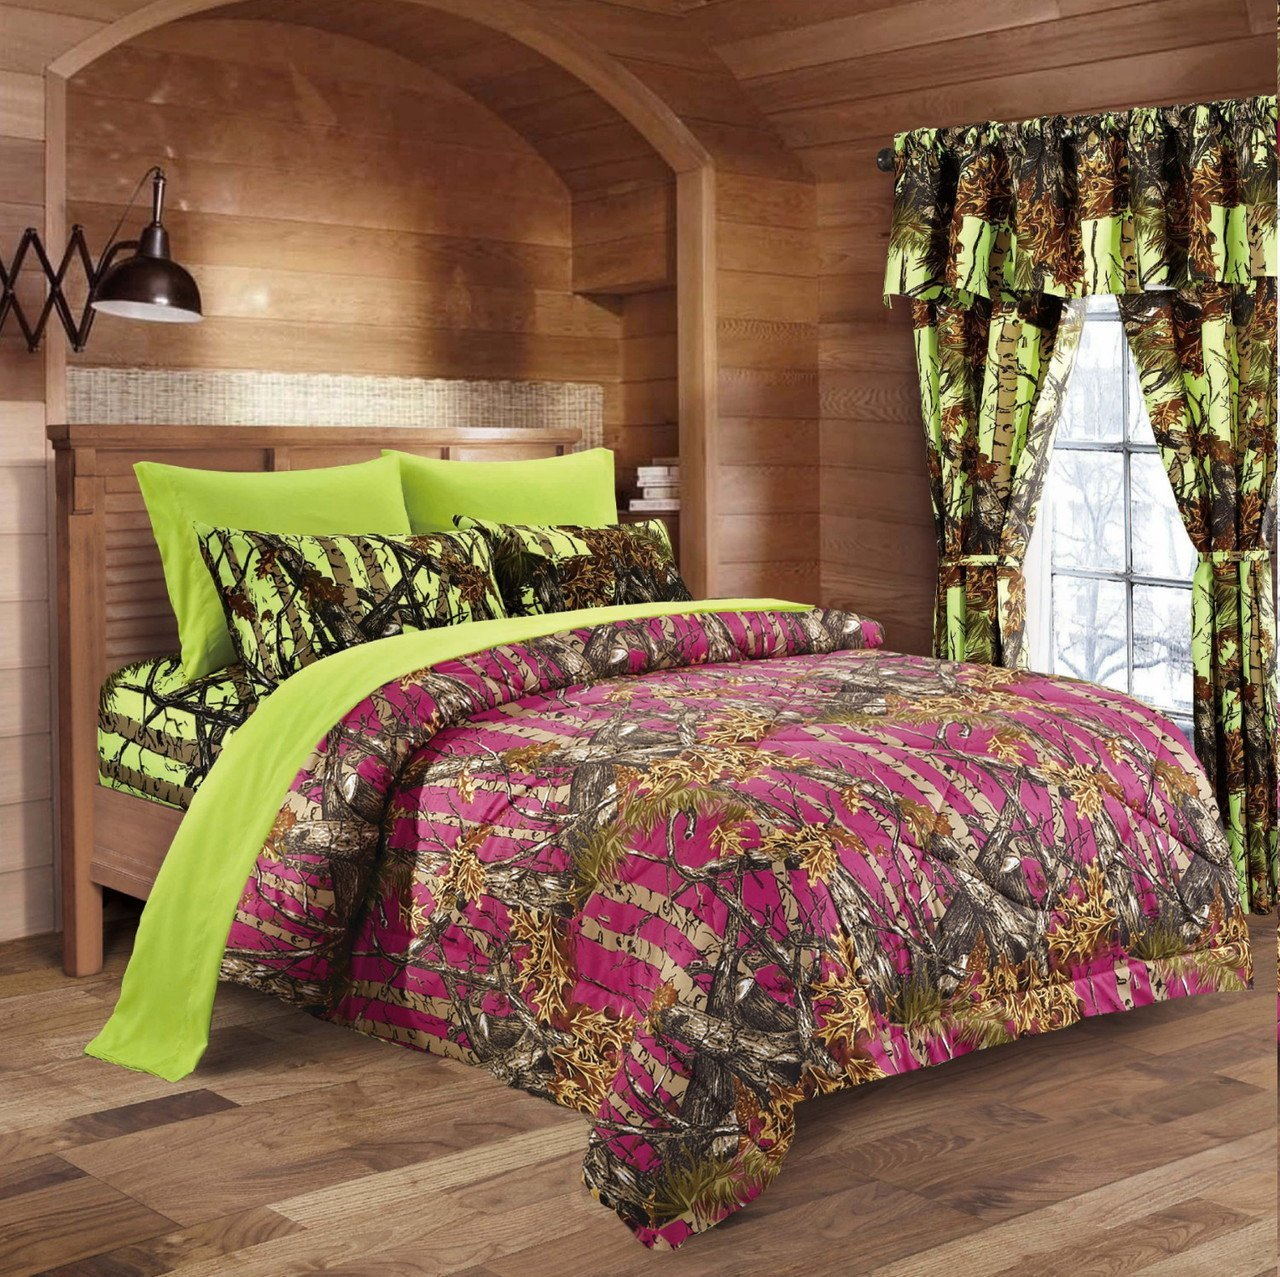 20 Lakes Camo Comforter, Sheet, & Pillowcase Set